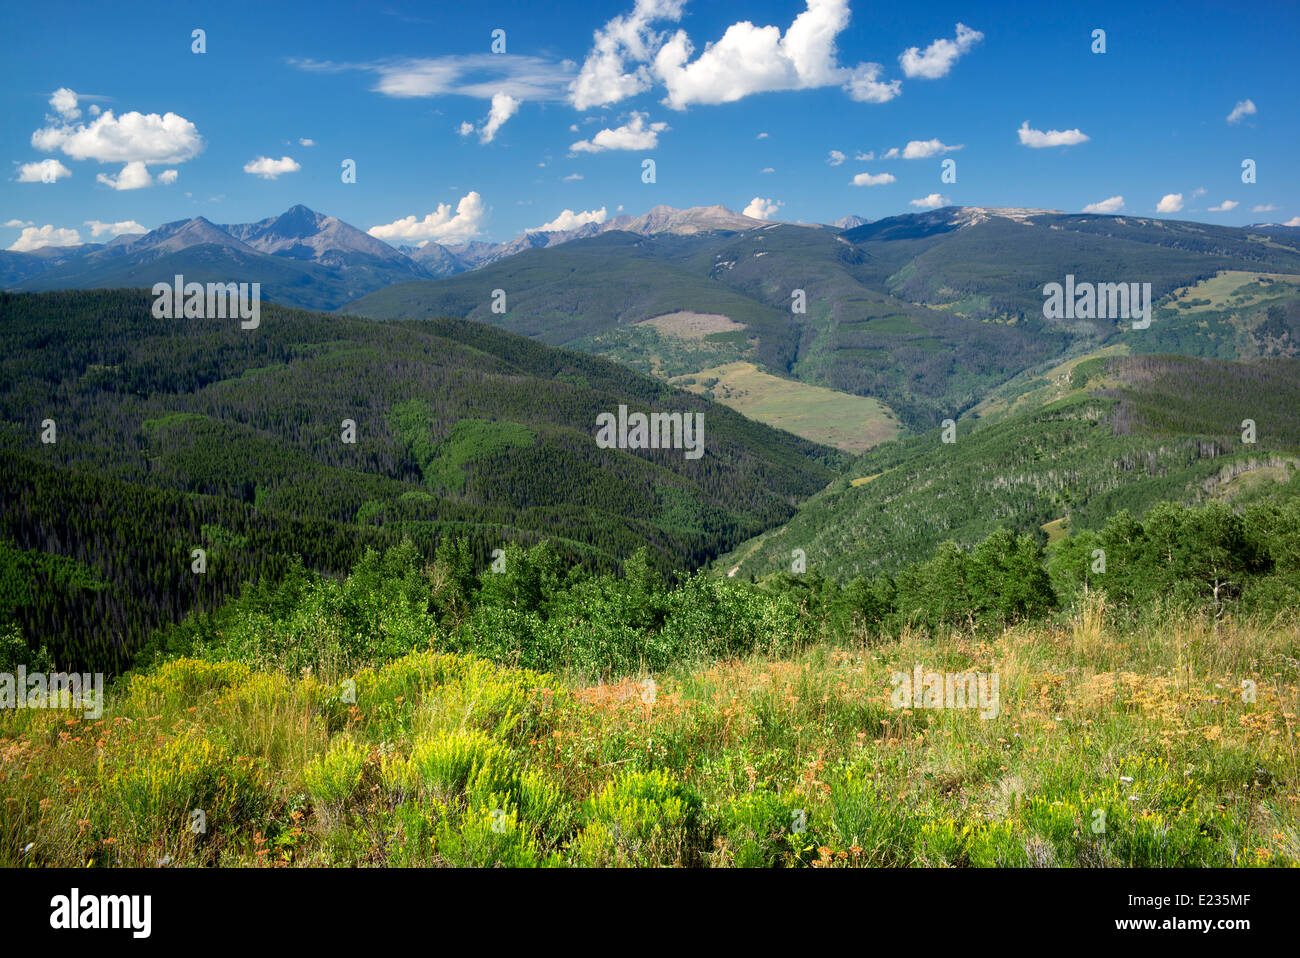 The Sawatch Range with rabbitbrush and clouds. Near Vail Colorado - Stock Image